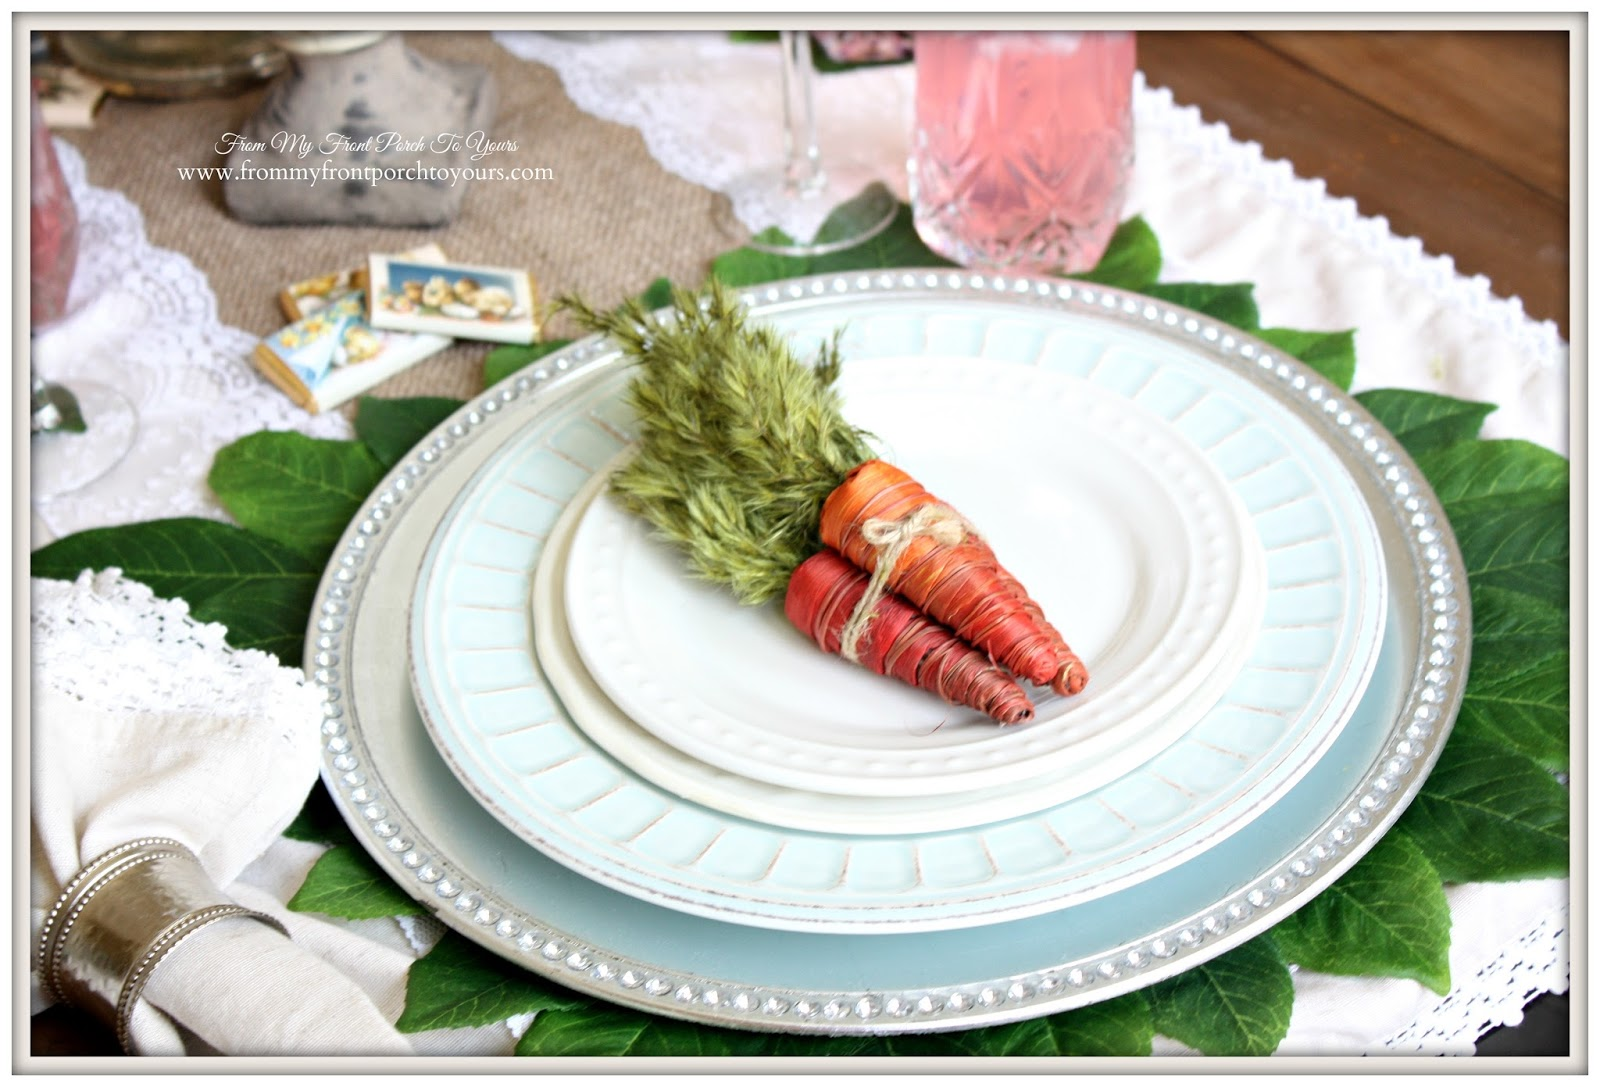 Easter Place Setting With Carrots-French Farmhouse Easter Dining Room- From My Front Porch To Yours